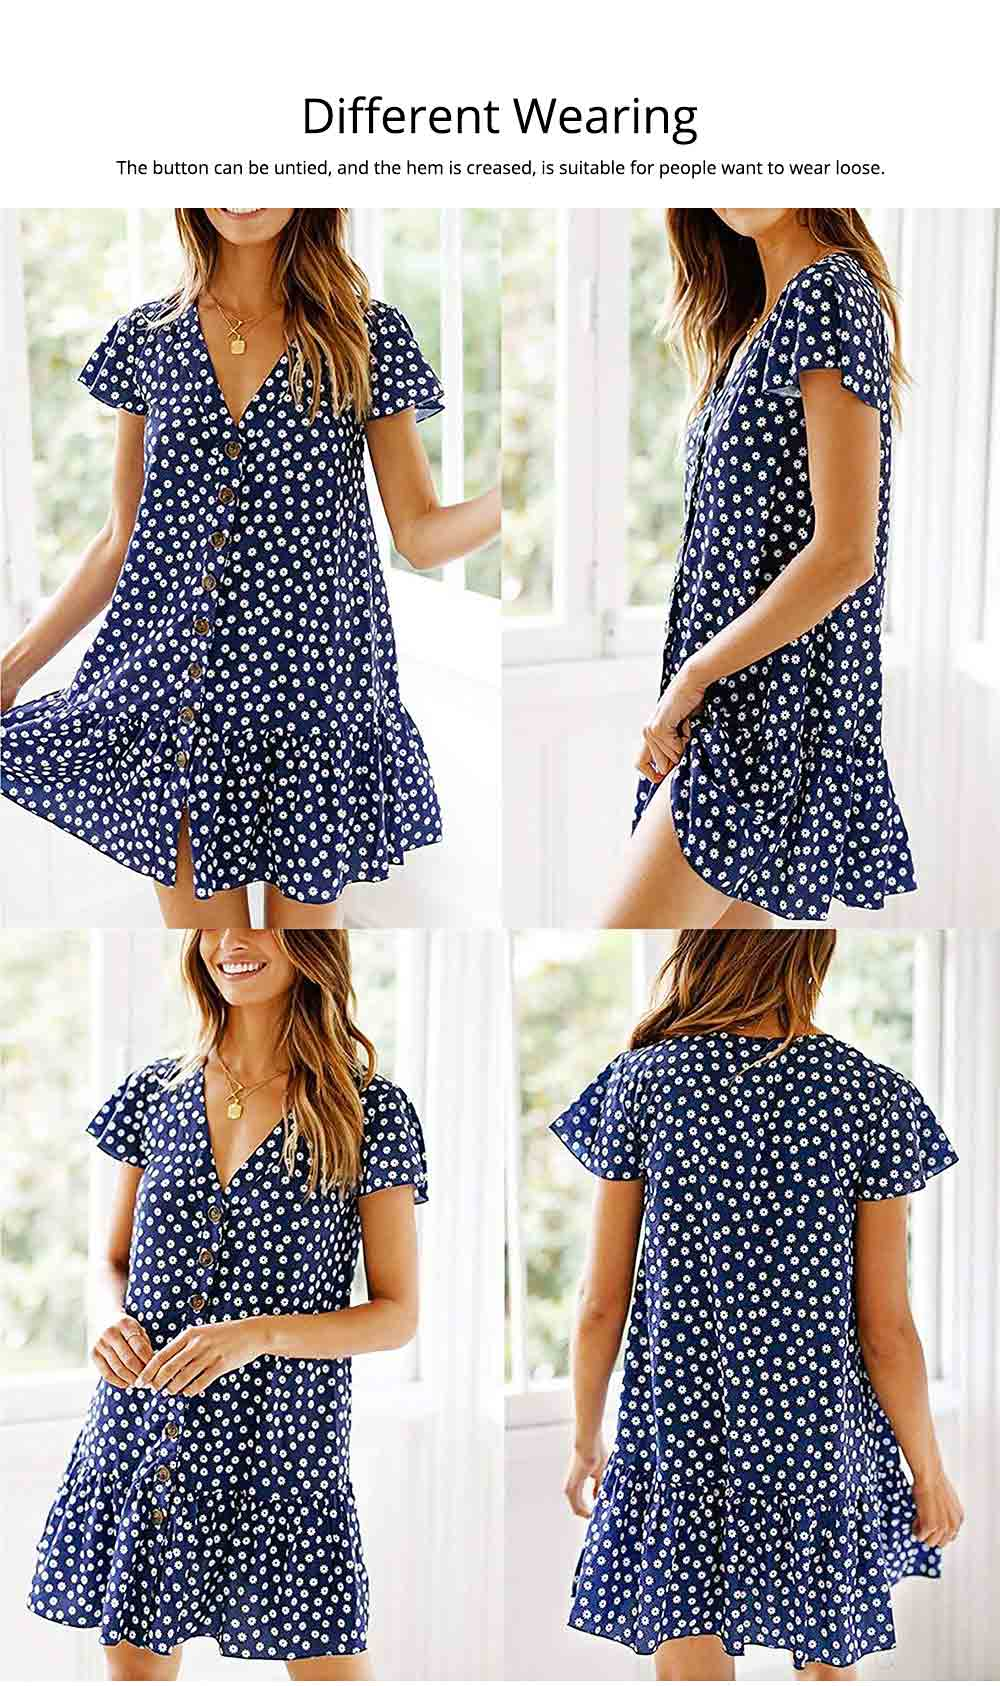 Summer Dot Print Dress Fashion V Neck Button Chiffon Casual Short Sleeve Women Sundress Mini Party Ladies Loose Ruffled Skirt 5